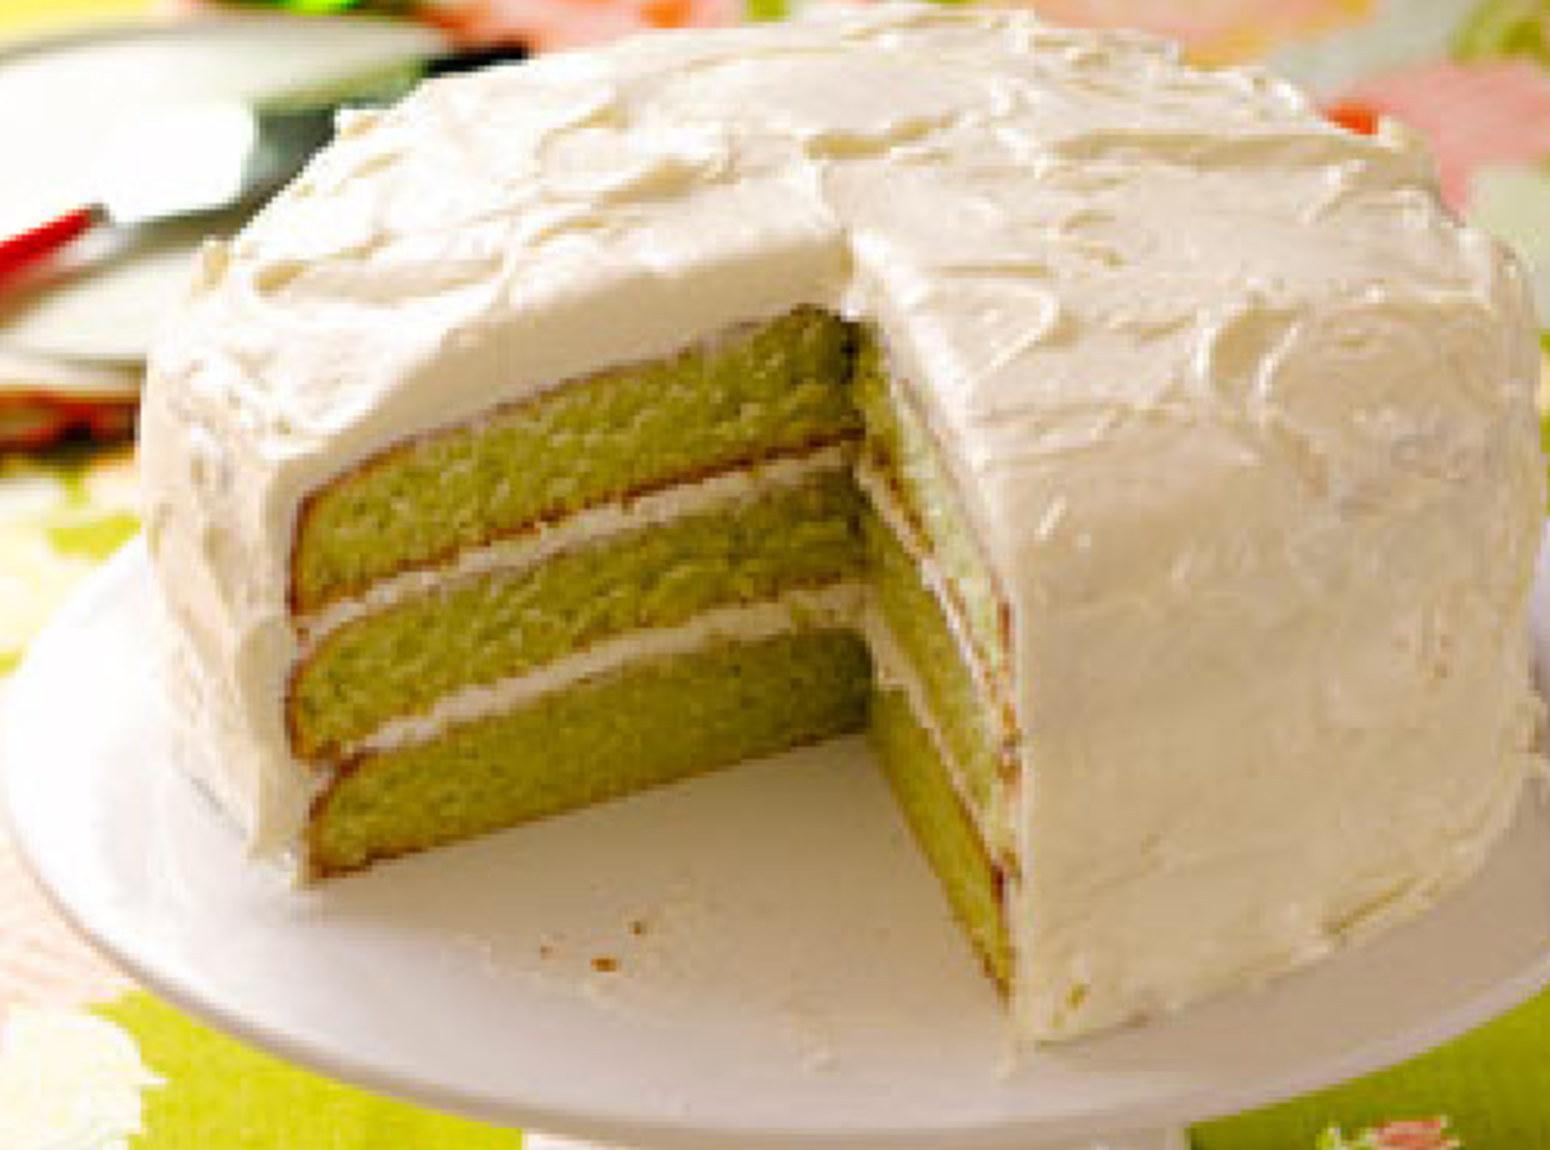 Key Lime Cake Recipe 4 | Just A Pinch Recipes